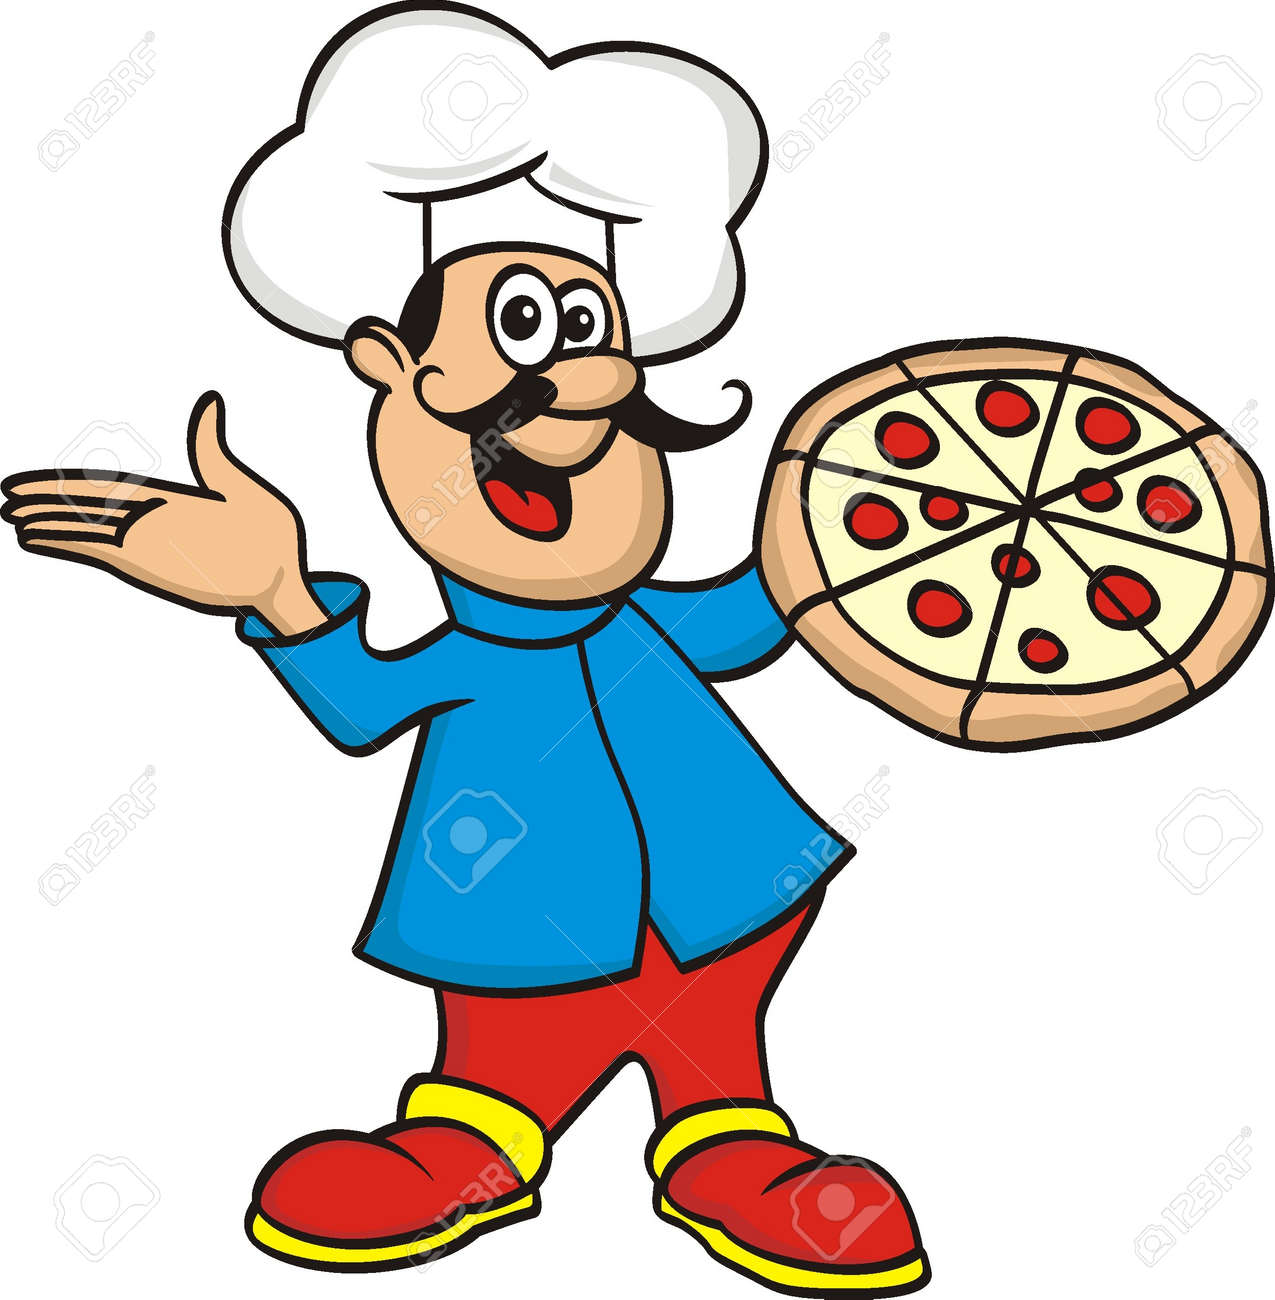 chef with pizza - 21023254